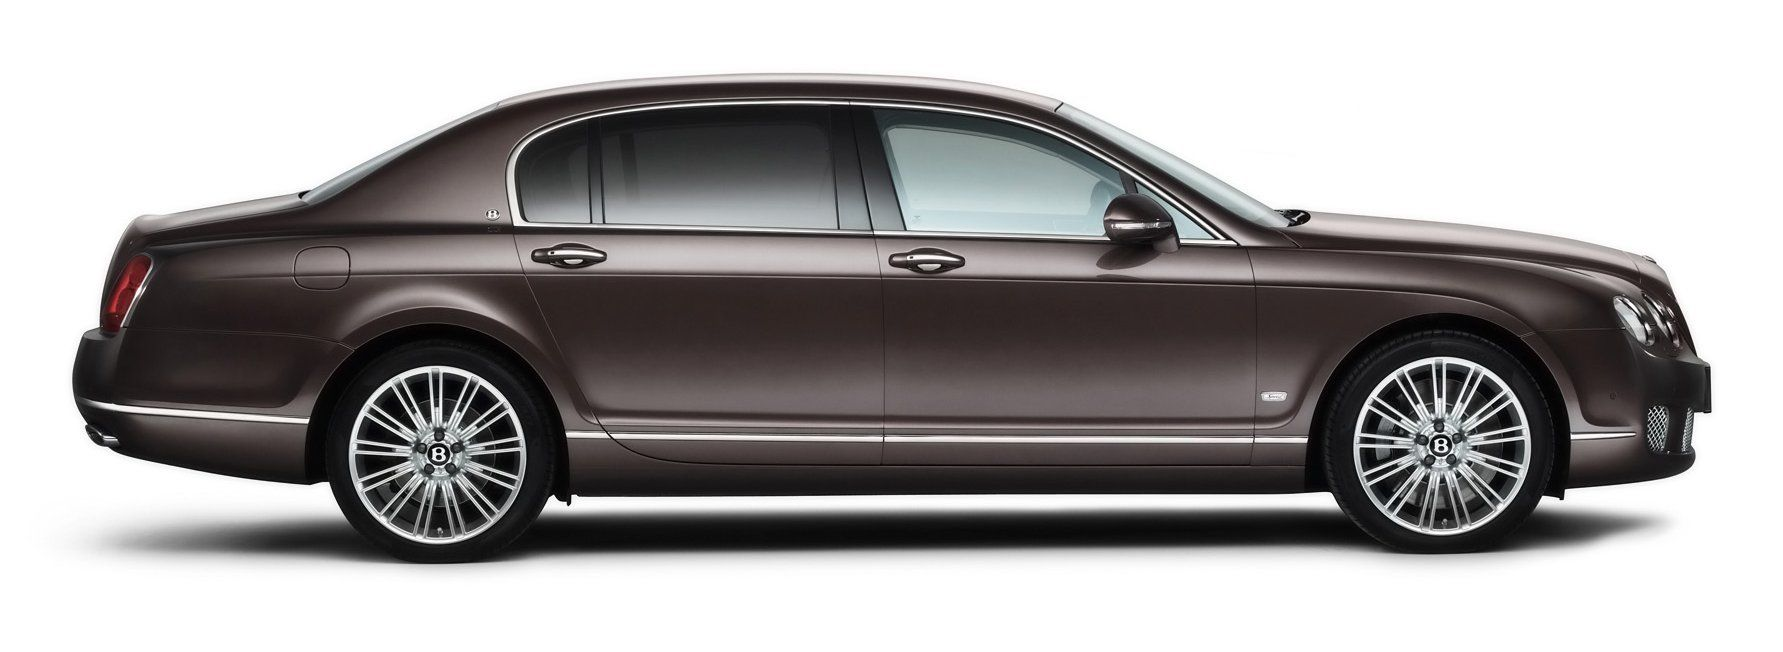 bentley continental flying spur speed china w12 5 998 cc 560 ps 479 ft lb 650 nm 1 600 bentley continental twin turbo automotive design pinterest